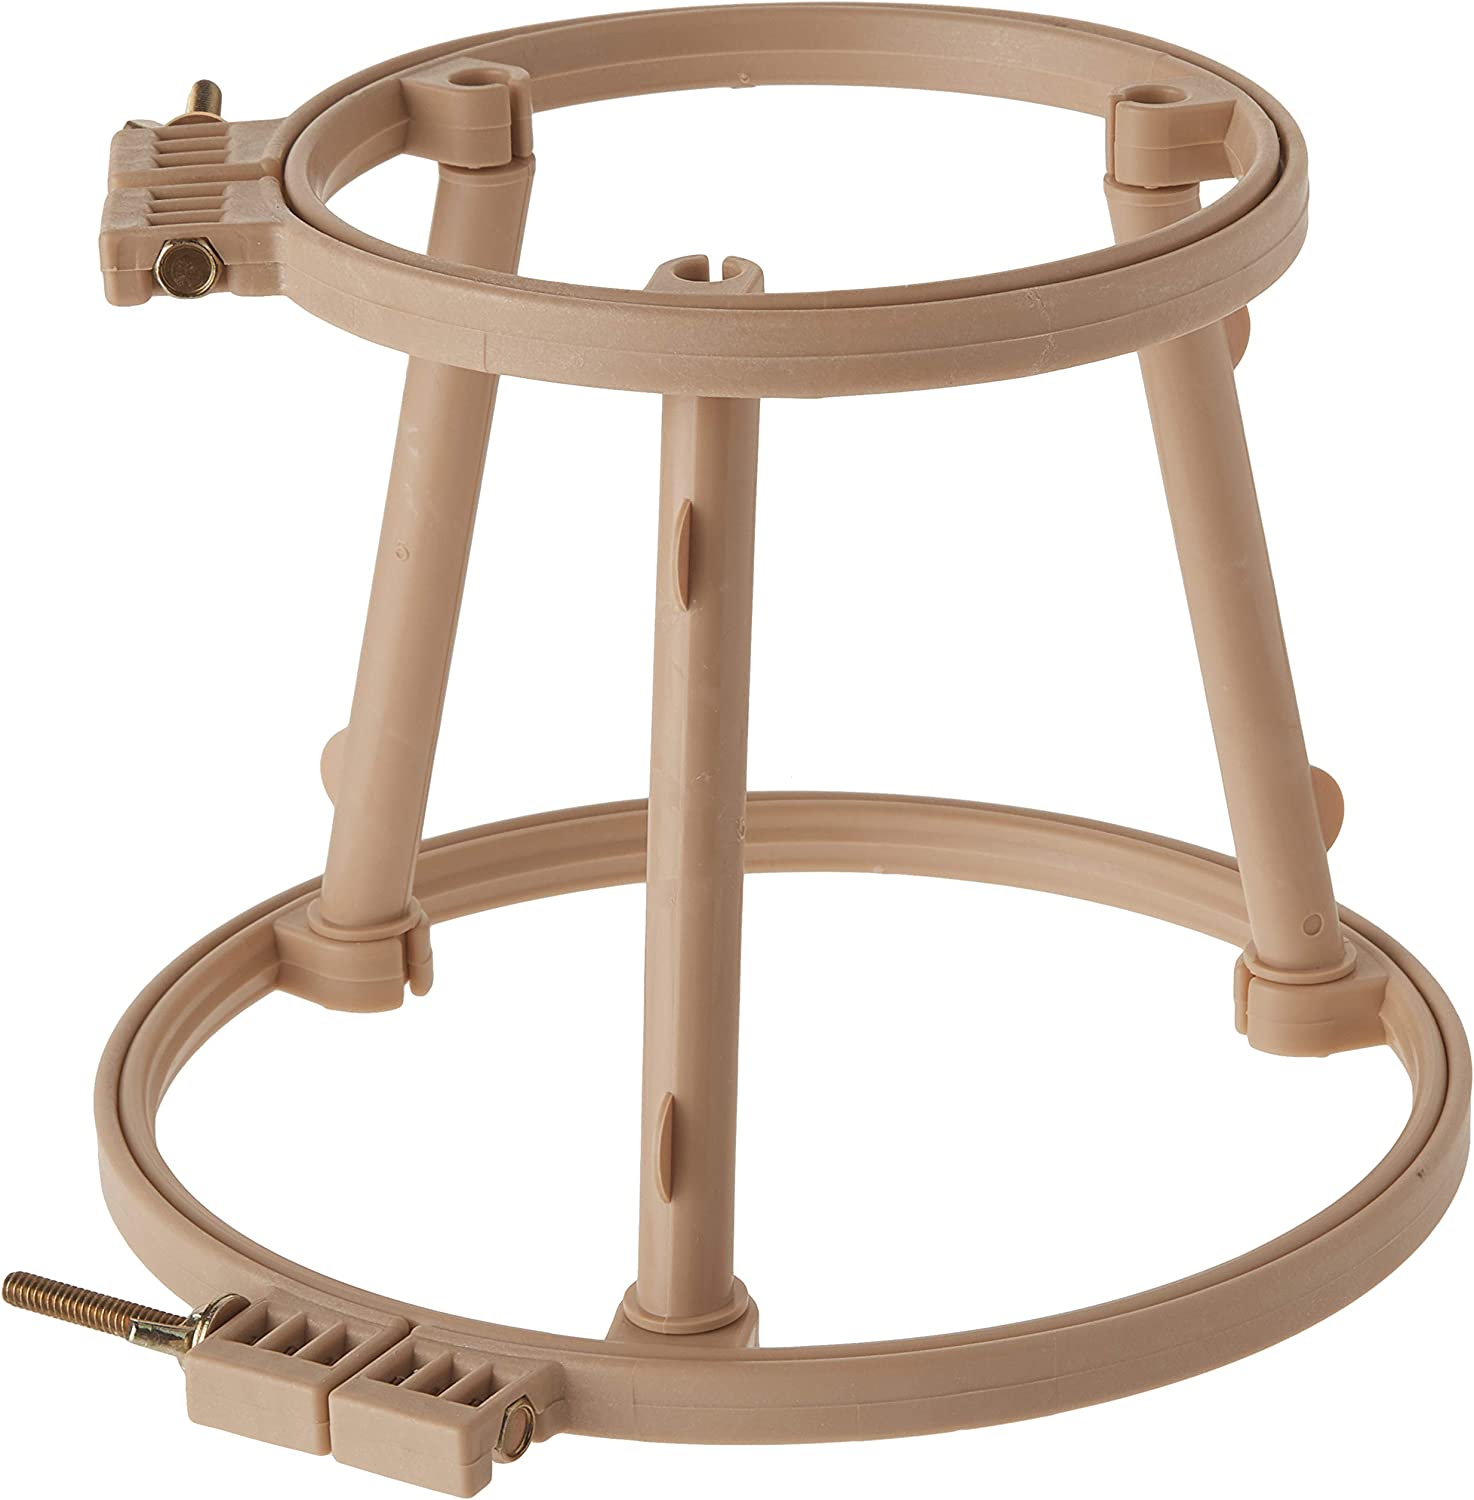 Morgan 7-Inch and 10-Inch Lap Stand Combo Hoops